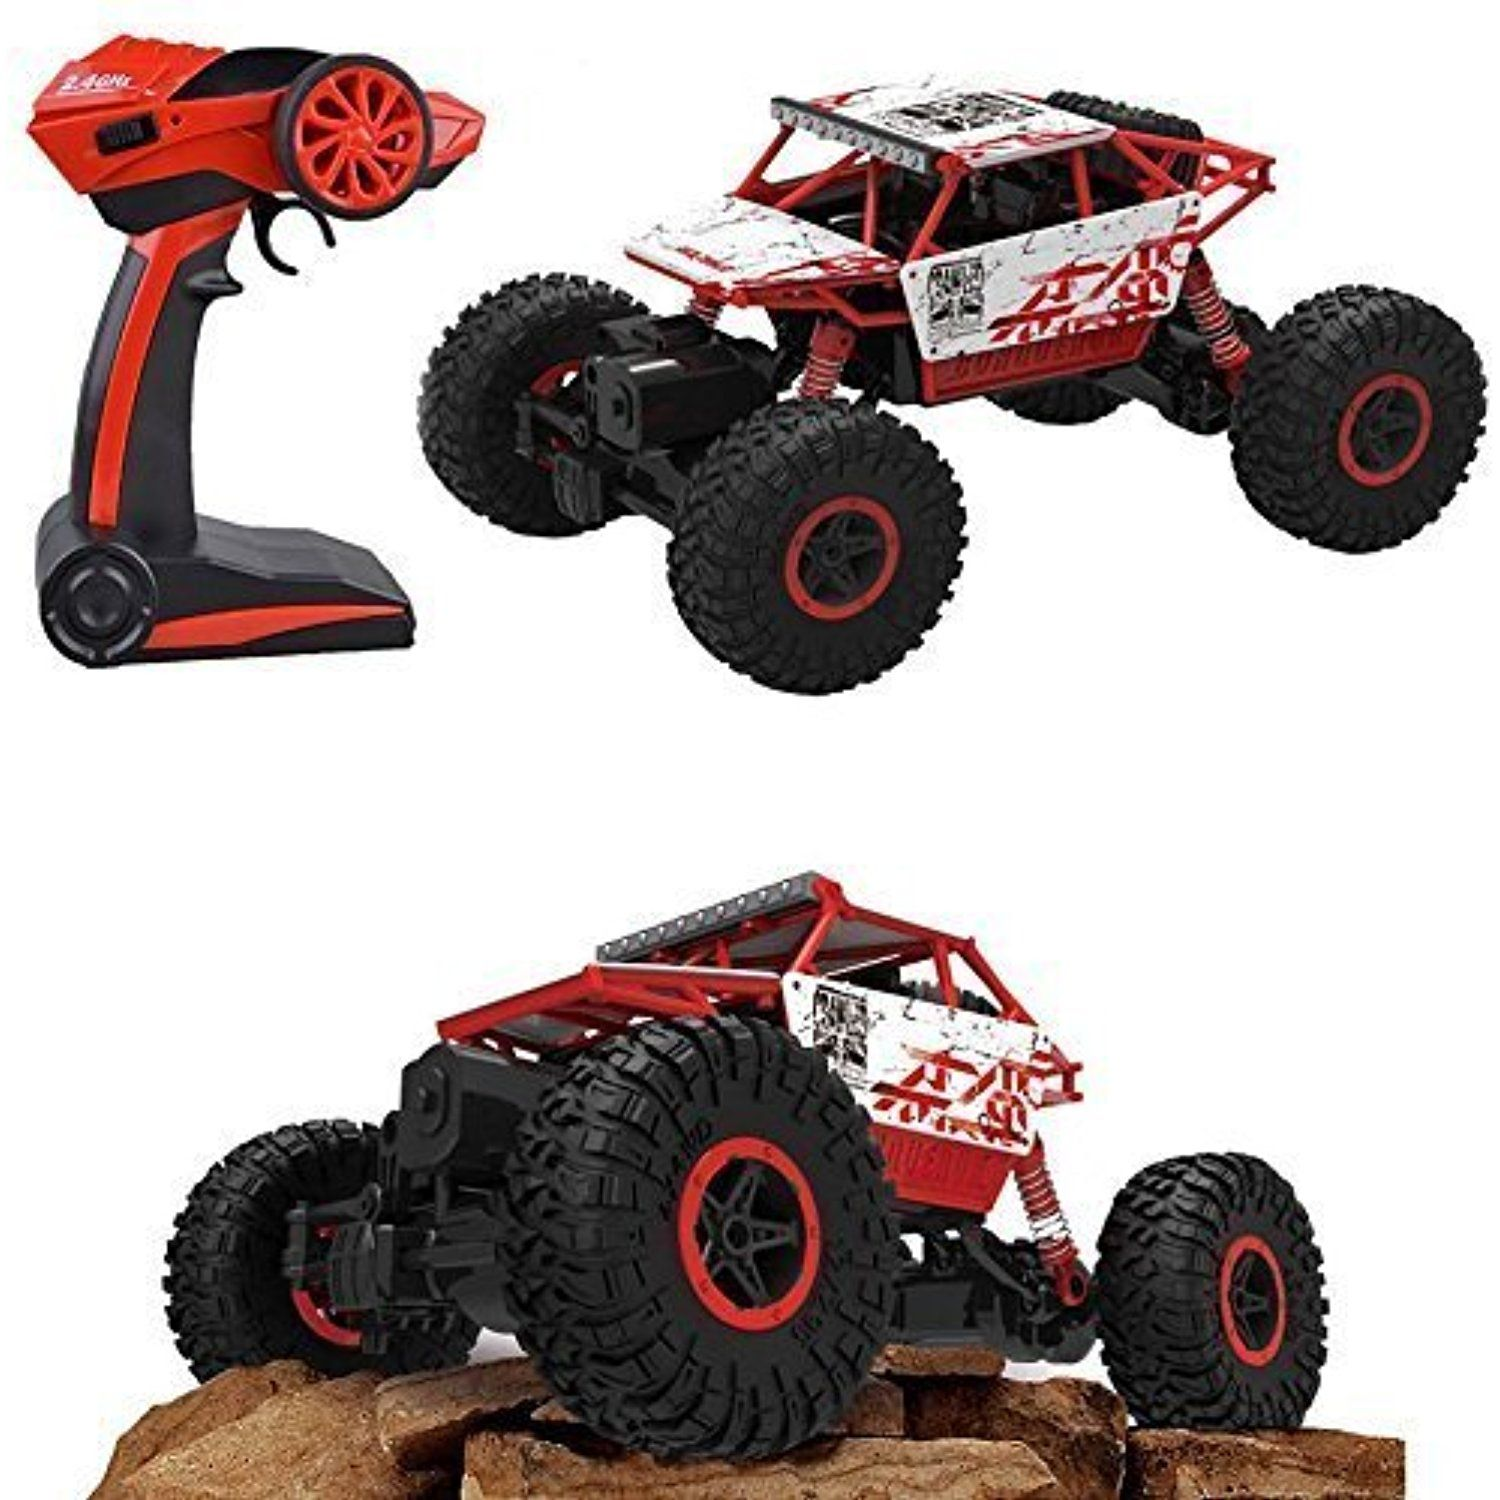 Pin On Toy Remote Control Play Vehicles